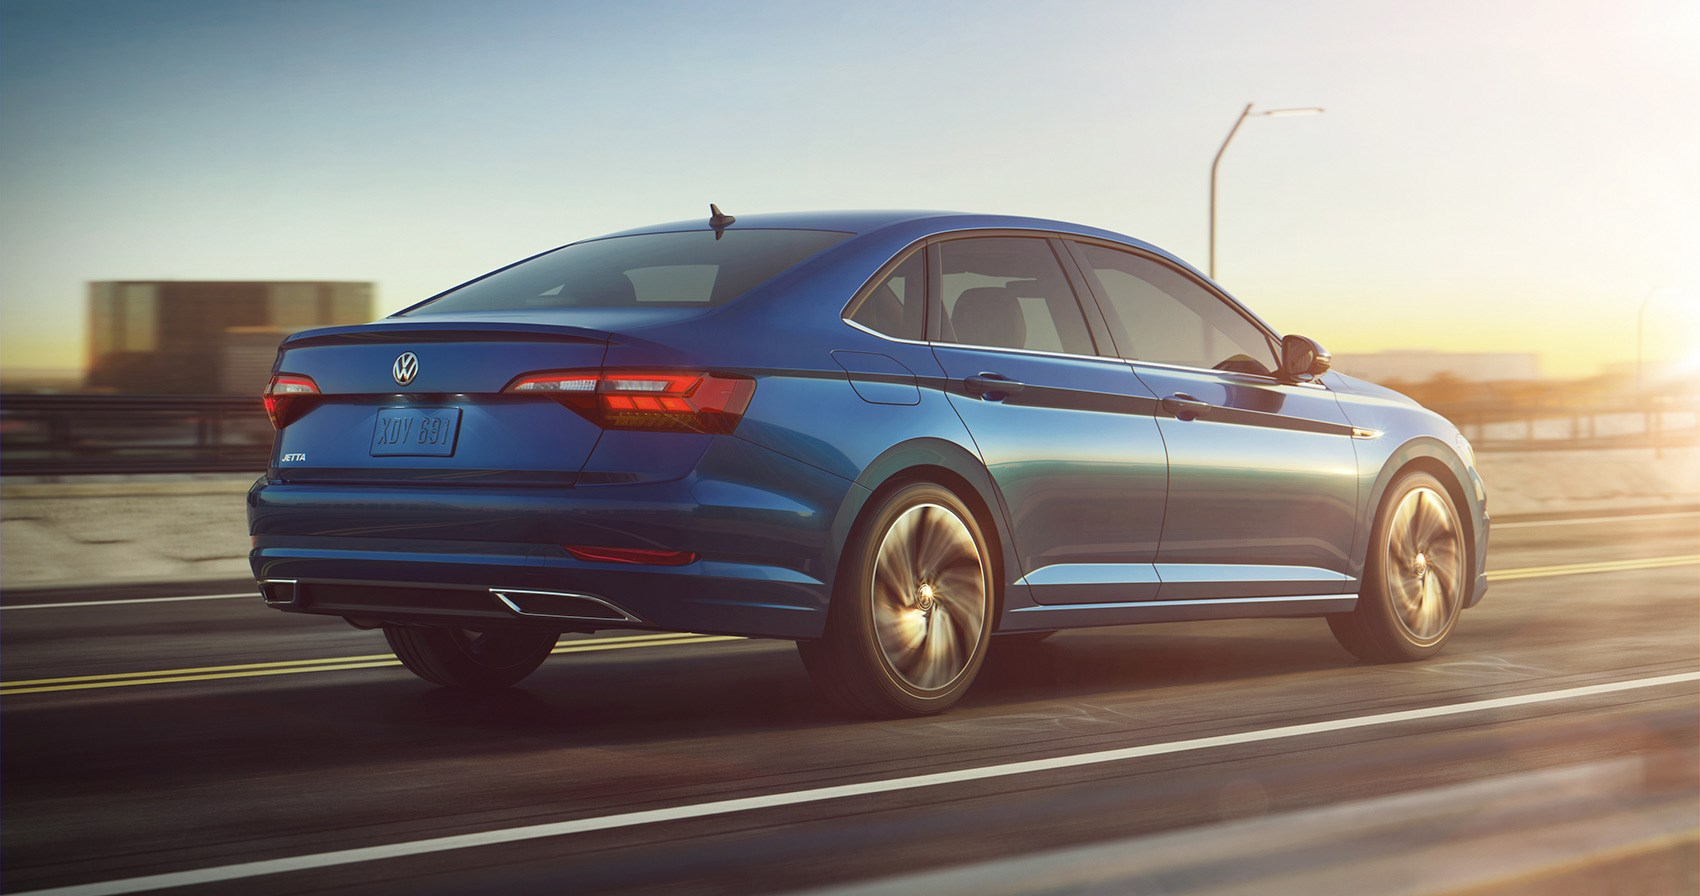 But New Vw Jetta Likely To Come Europe